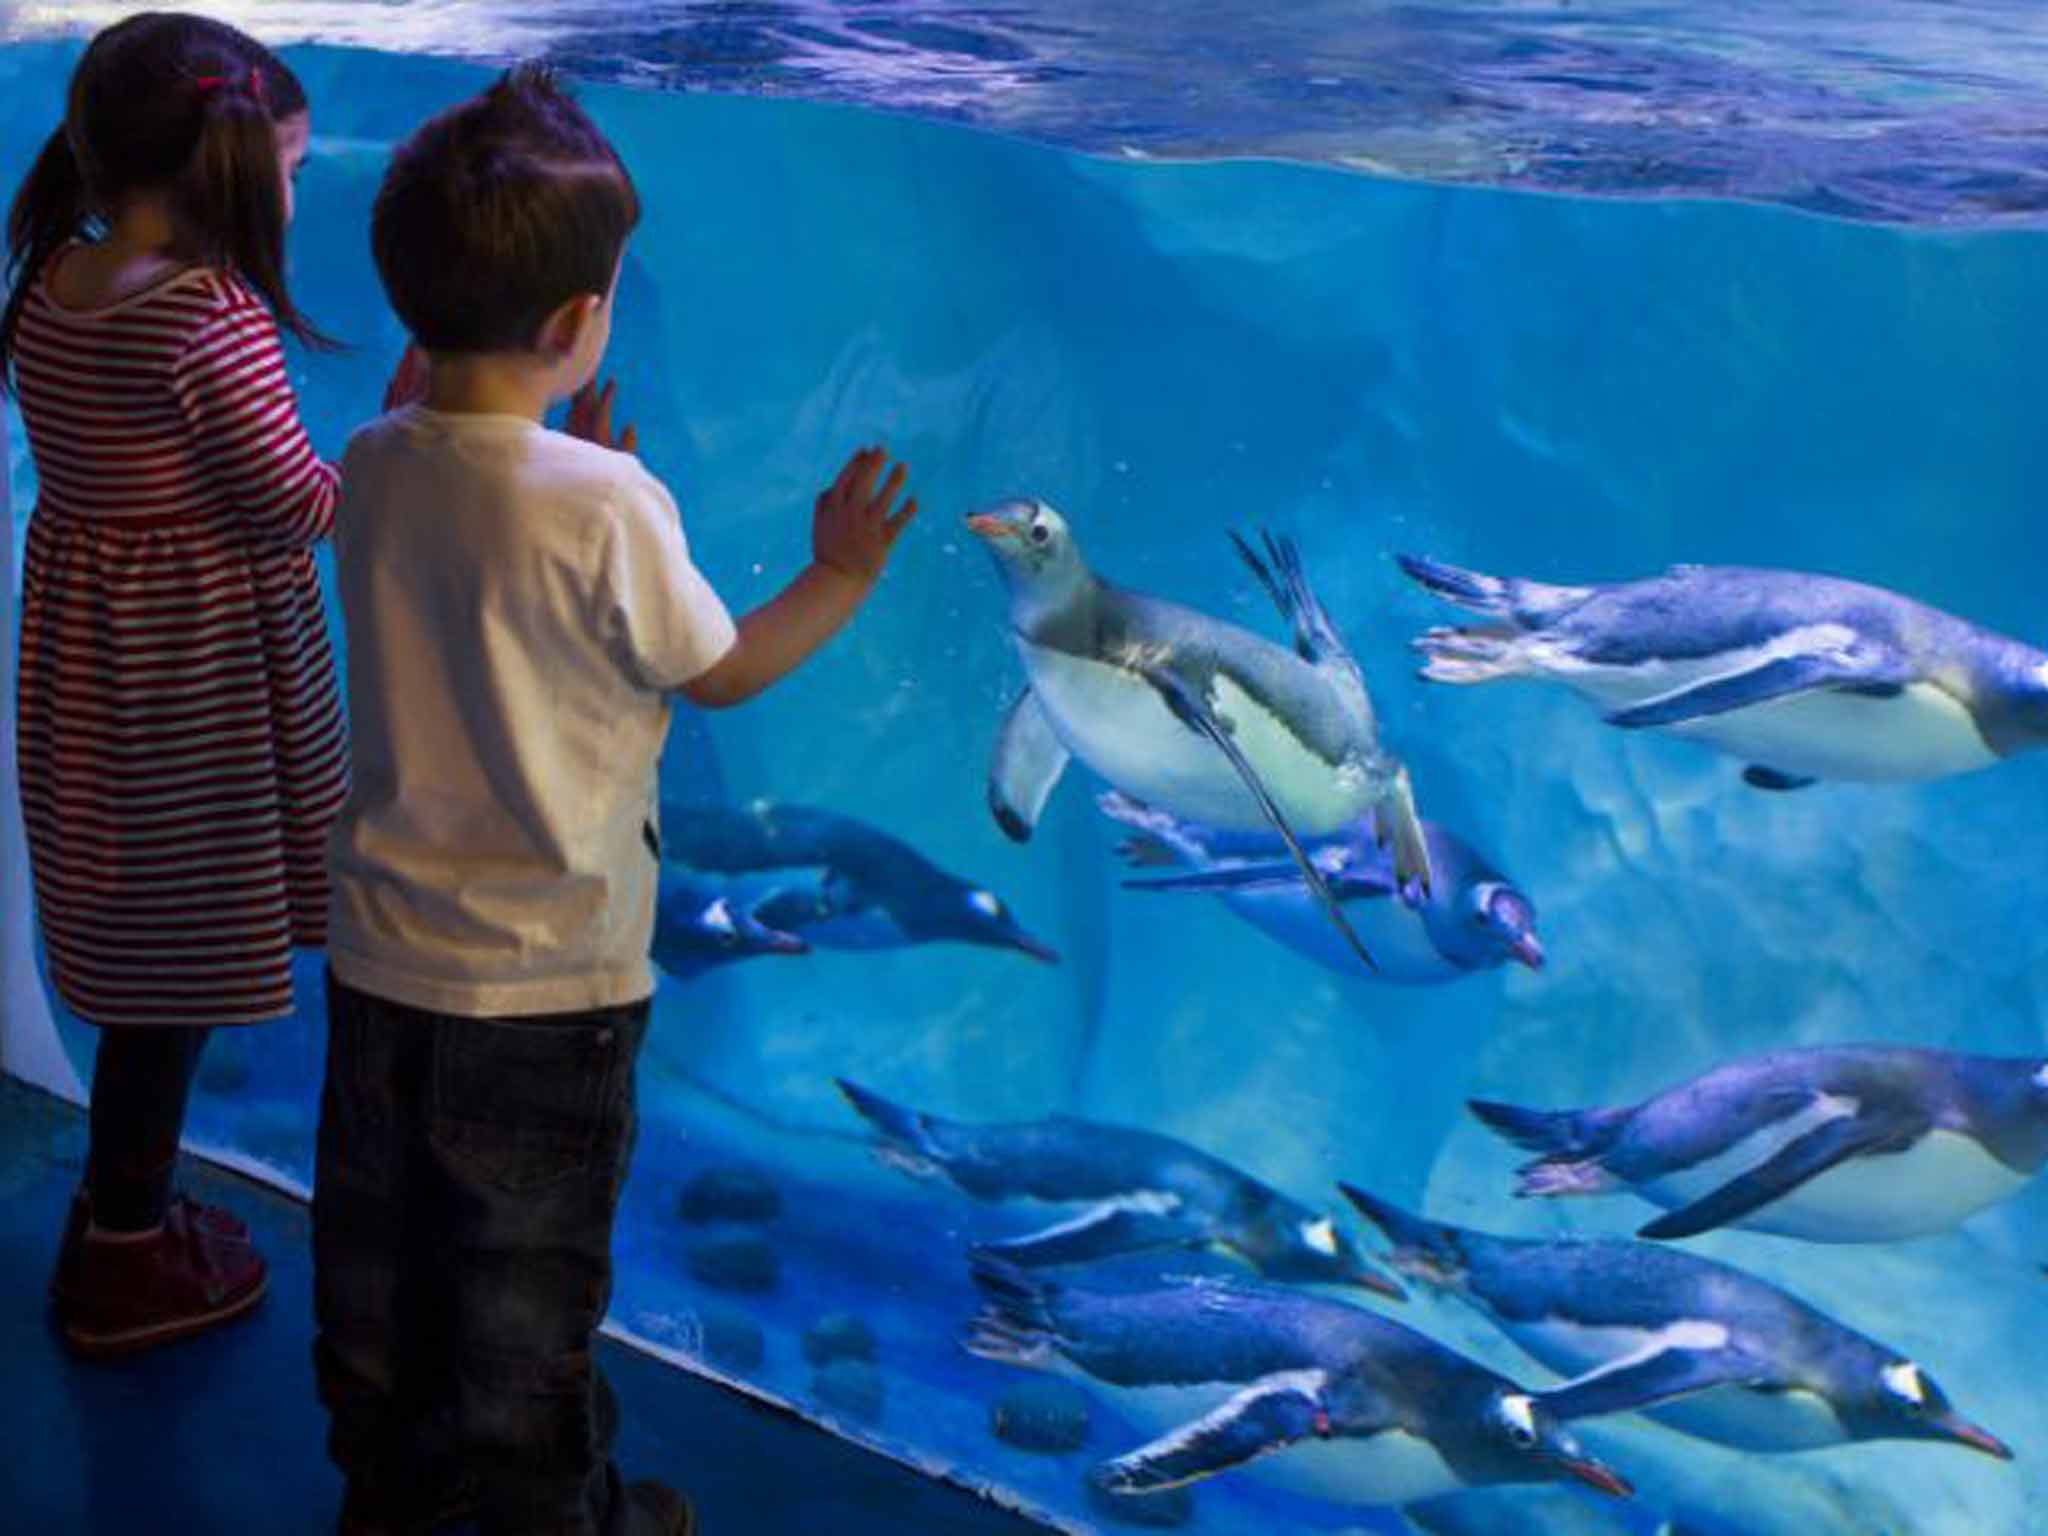 Sea Life aquariums could lose Marine Conservation Society sponsorship due to high animal death rates